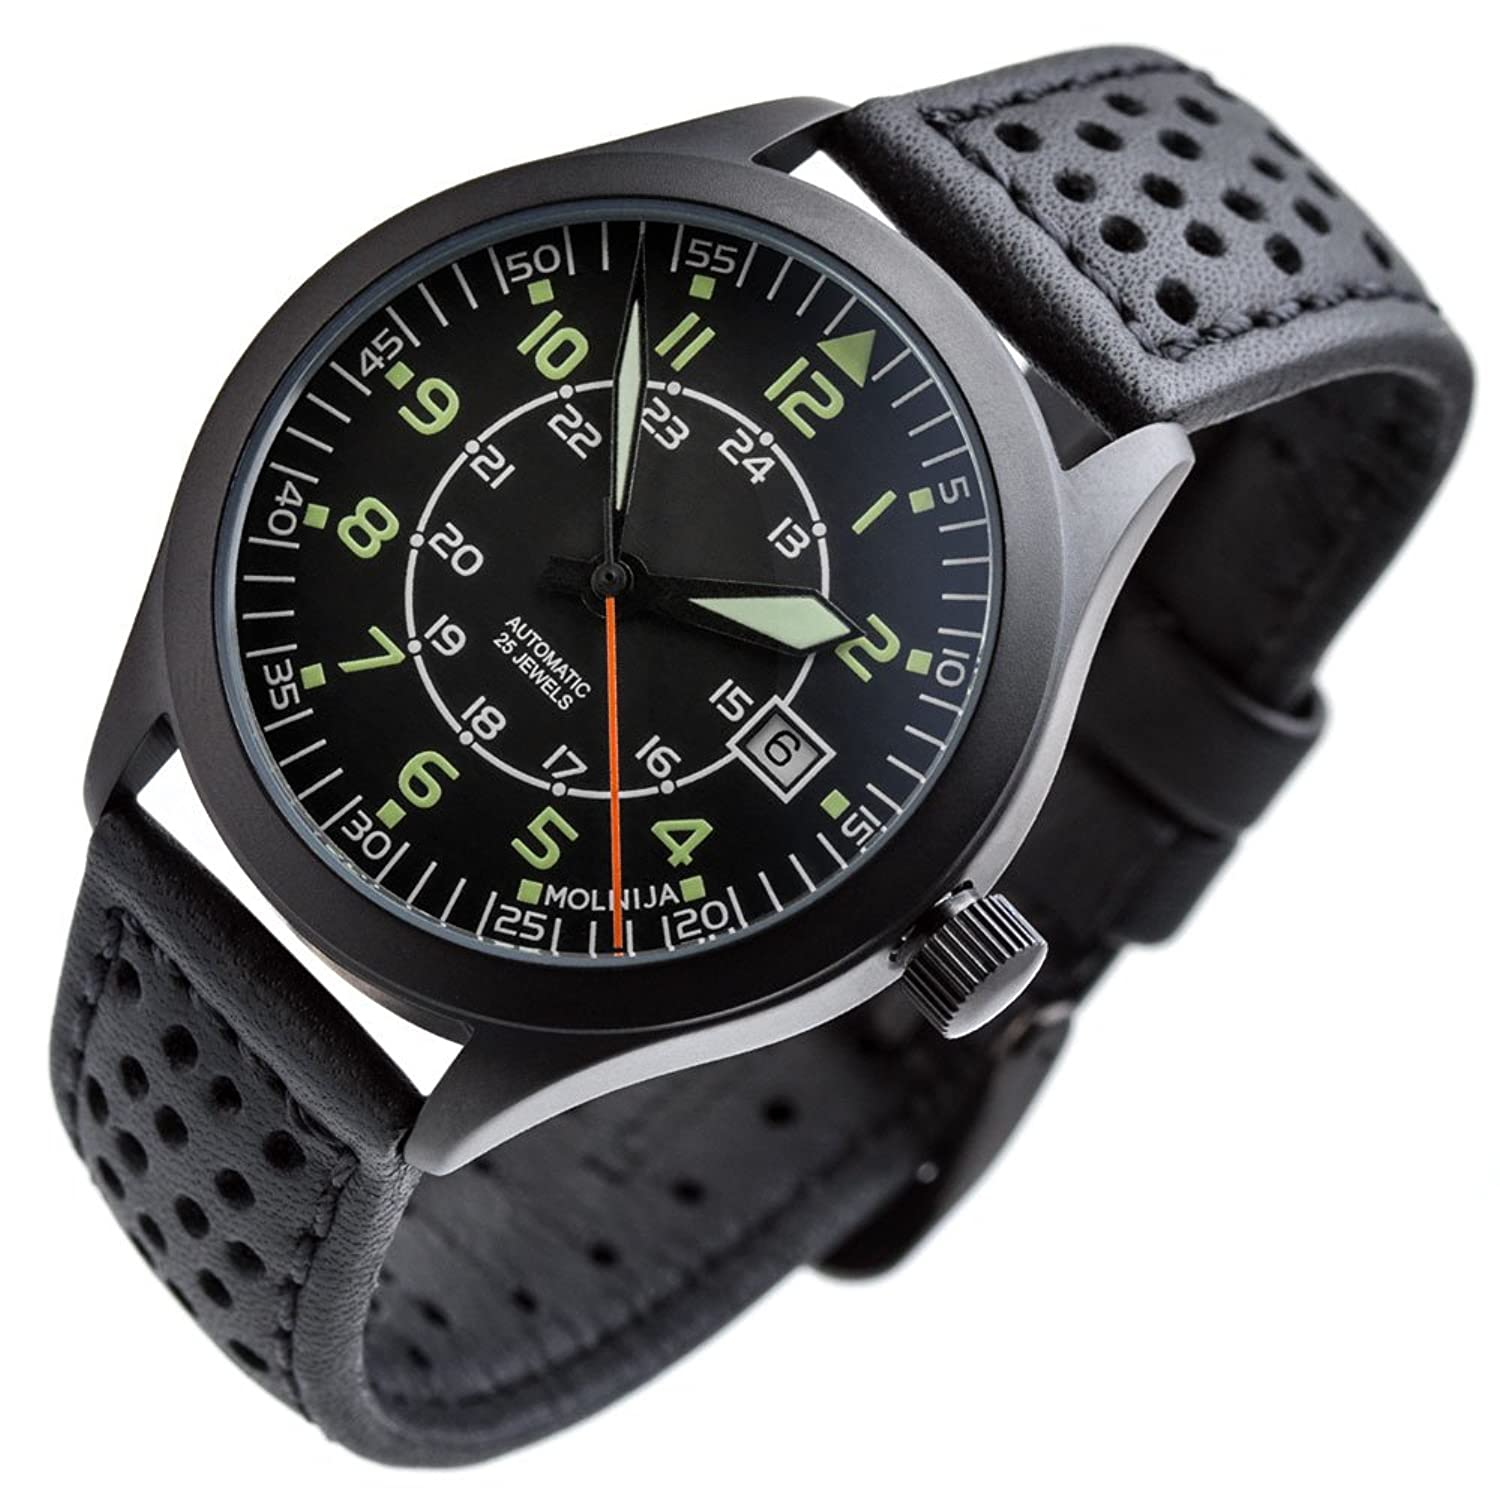 TMP2 · Tactical Military Pilot - Fliegeruhr - Automatik Kaliber 2824